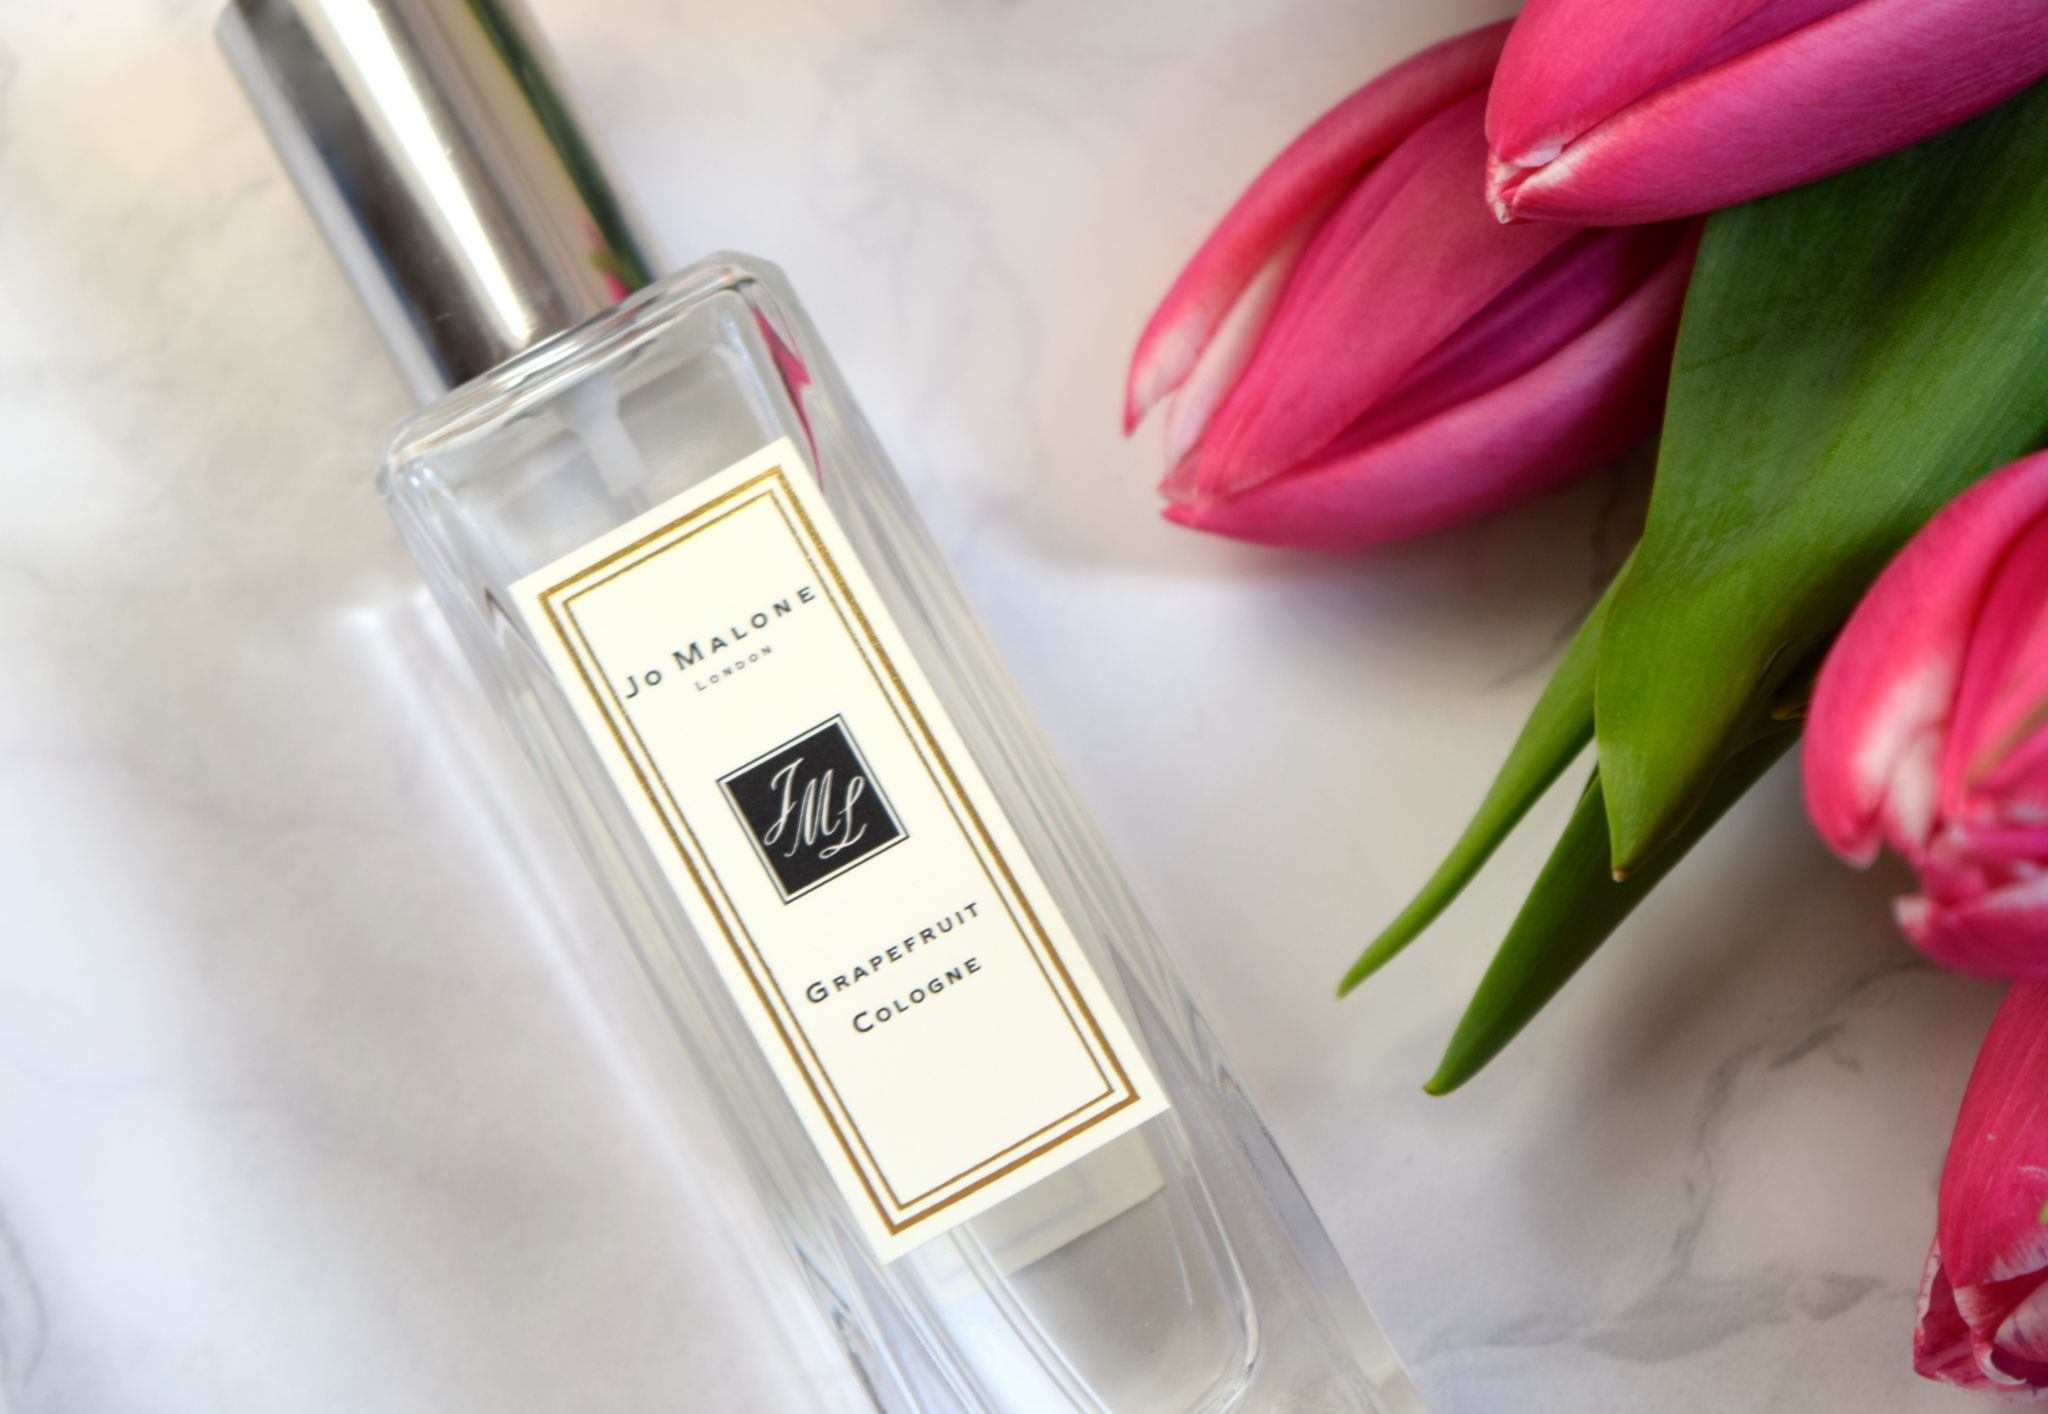 Jo Malone Grapefruit Cologne 1